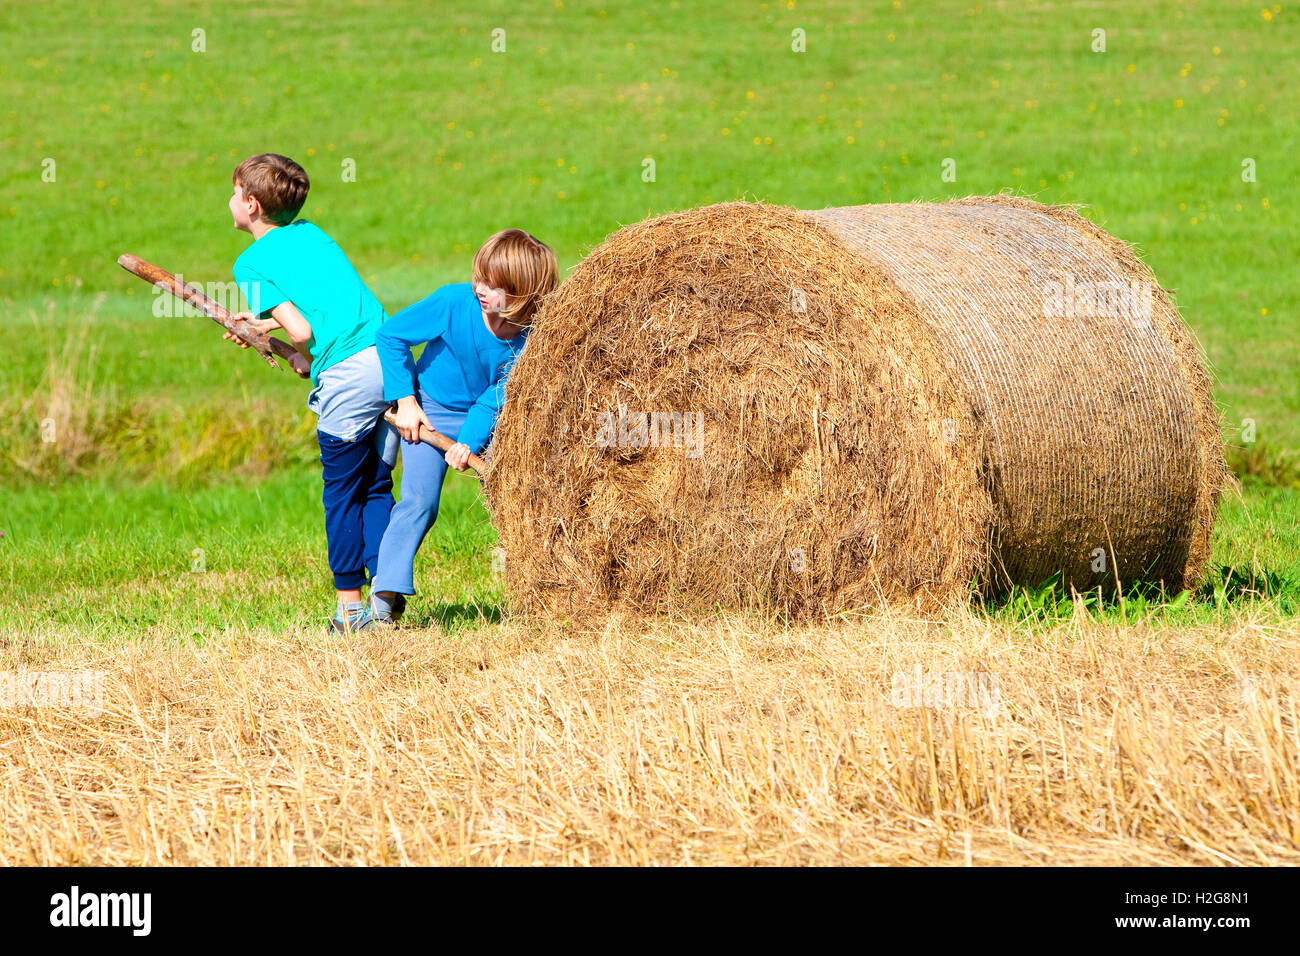 Two Boys Moving Bale of Hay with Stick as a Lever - Stock Image